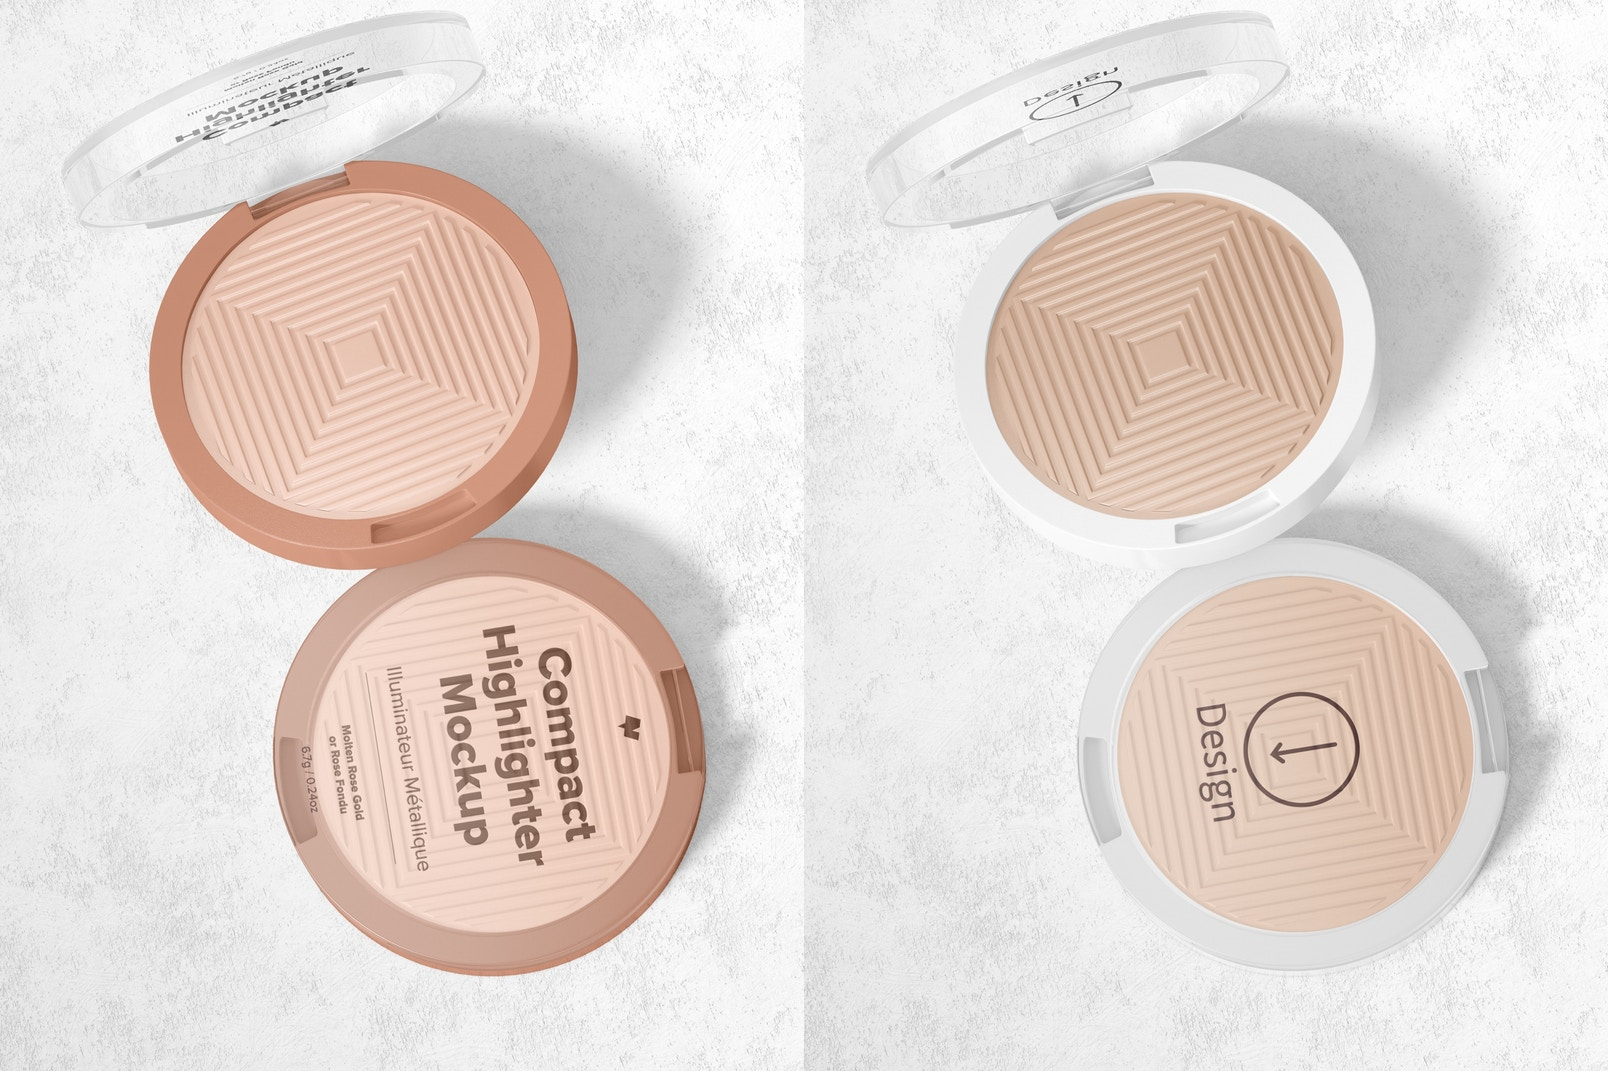 Compact Highlighter Packaging Mockup, Top View